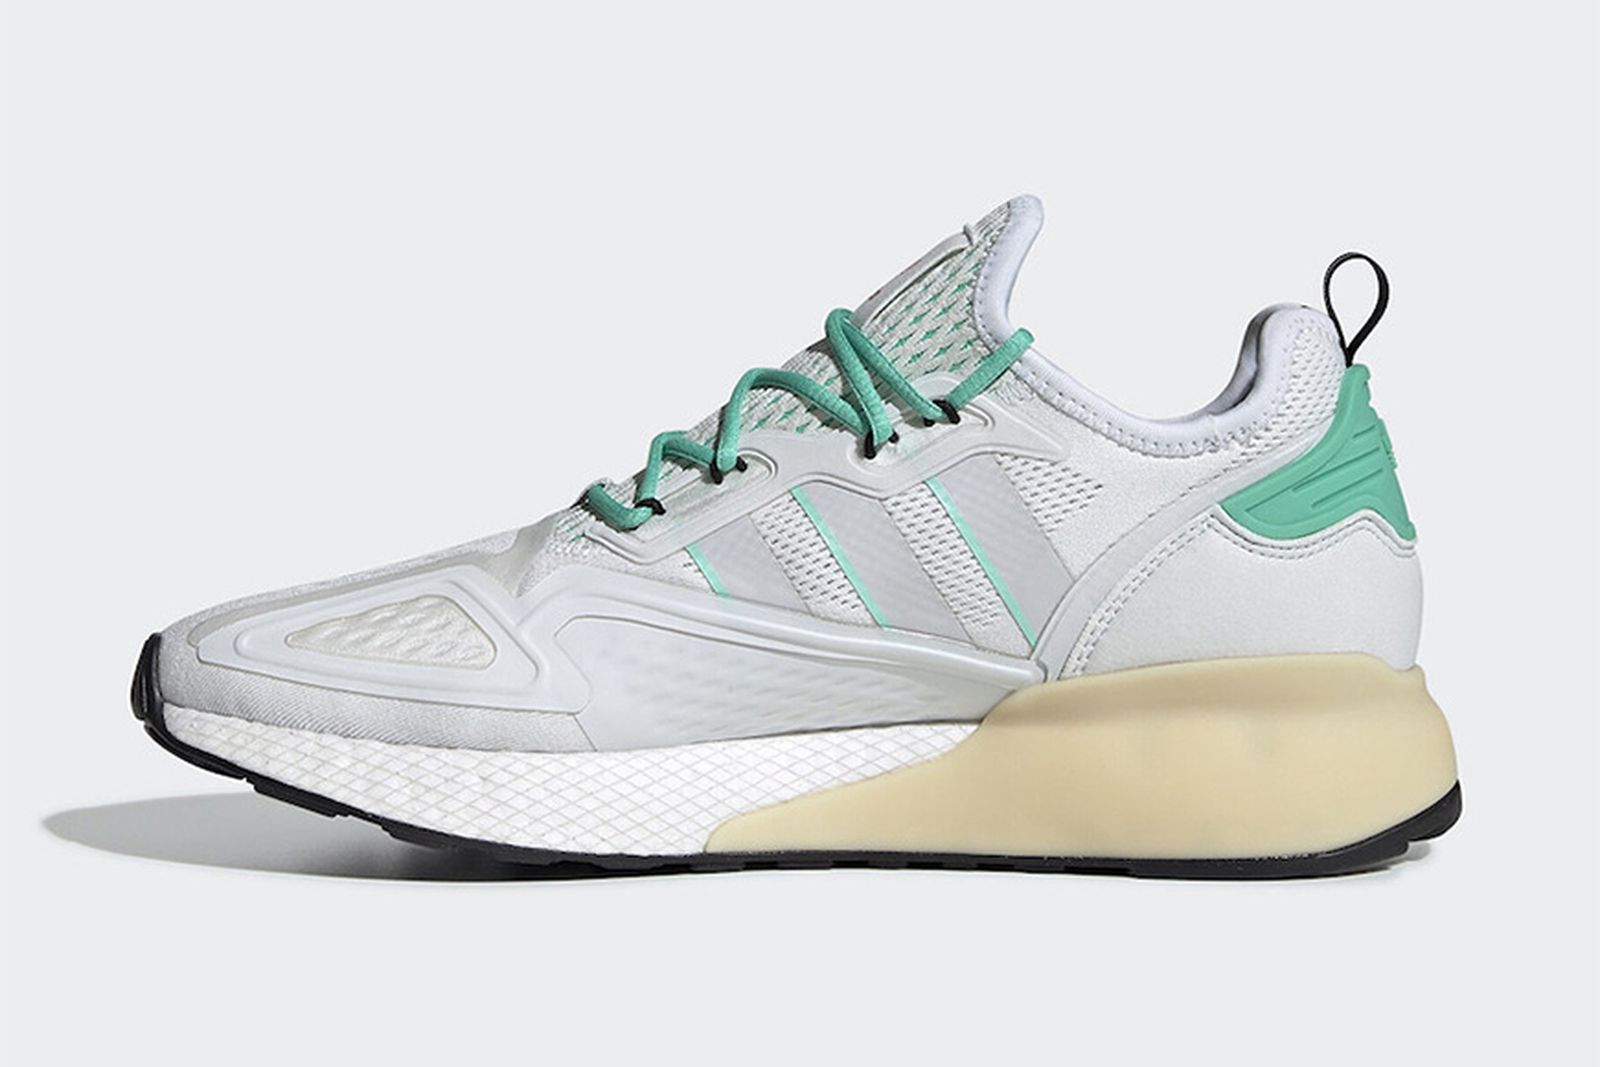 adidas-zx-2k-boost-release-date-price-02